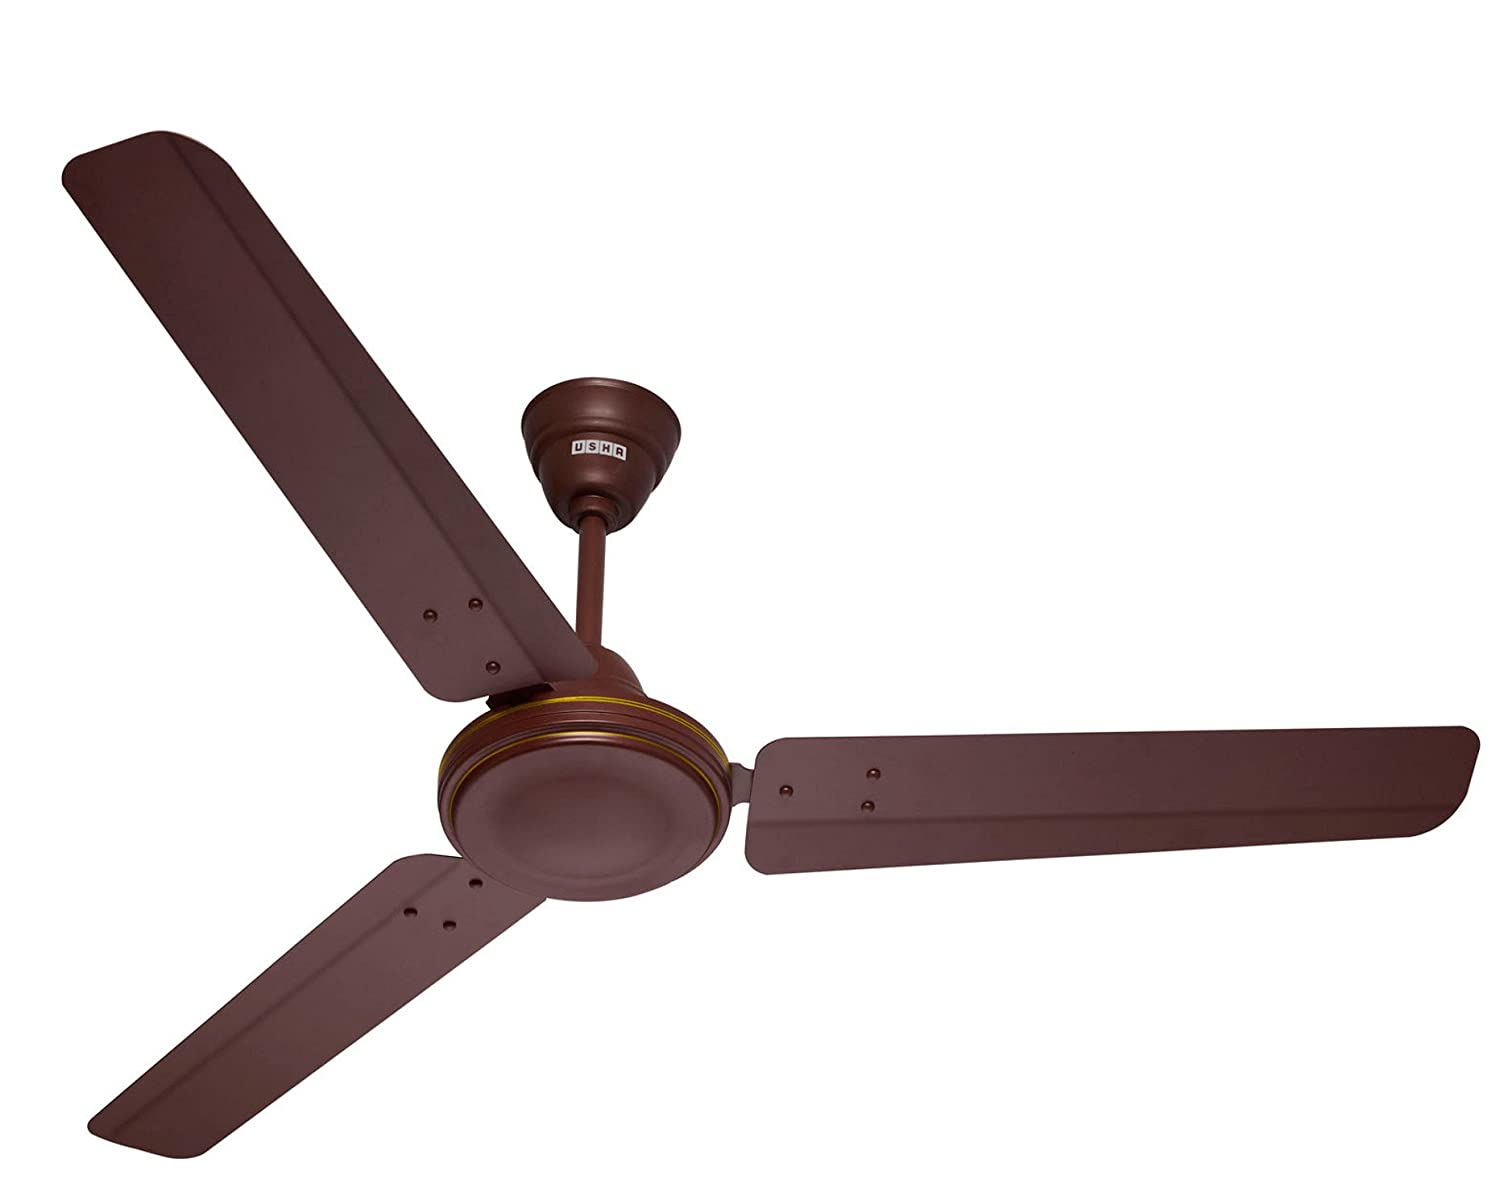 Buy usha striker 1200mm ceiling fan without regulator matt brown buy usha striker 1200mm ceiling fan without regulator matt brown online at low prices in india amazon aloadofball Image collections